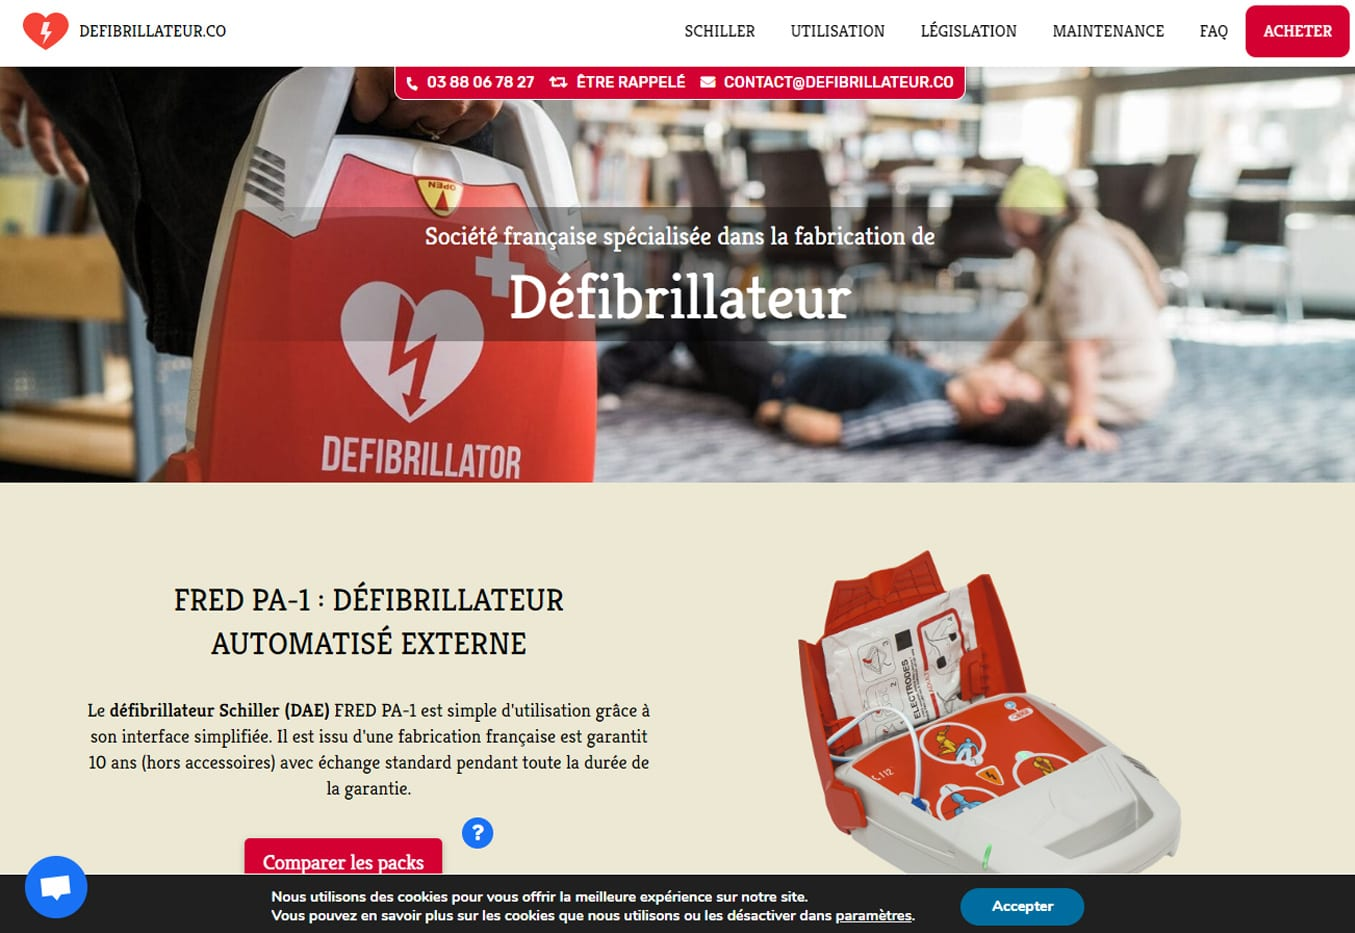 defibrillateur.co